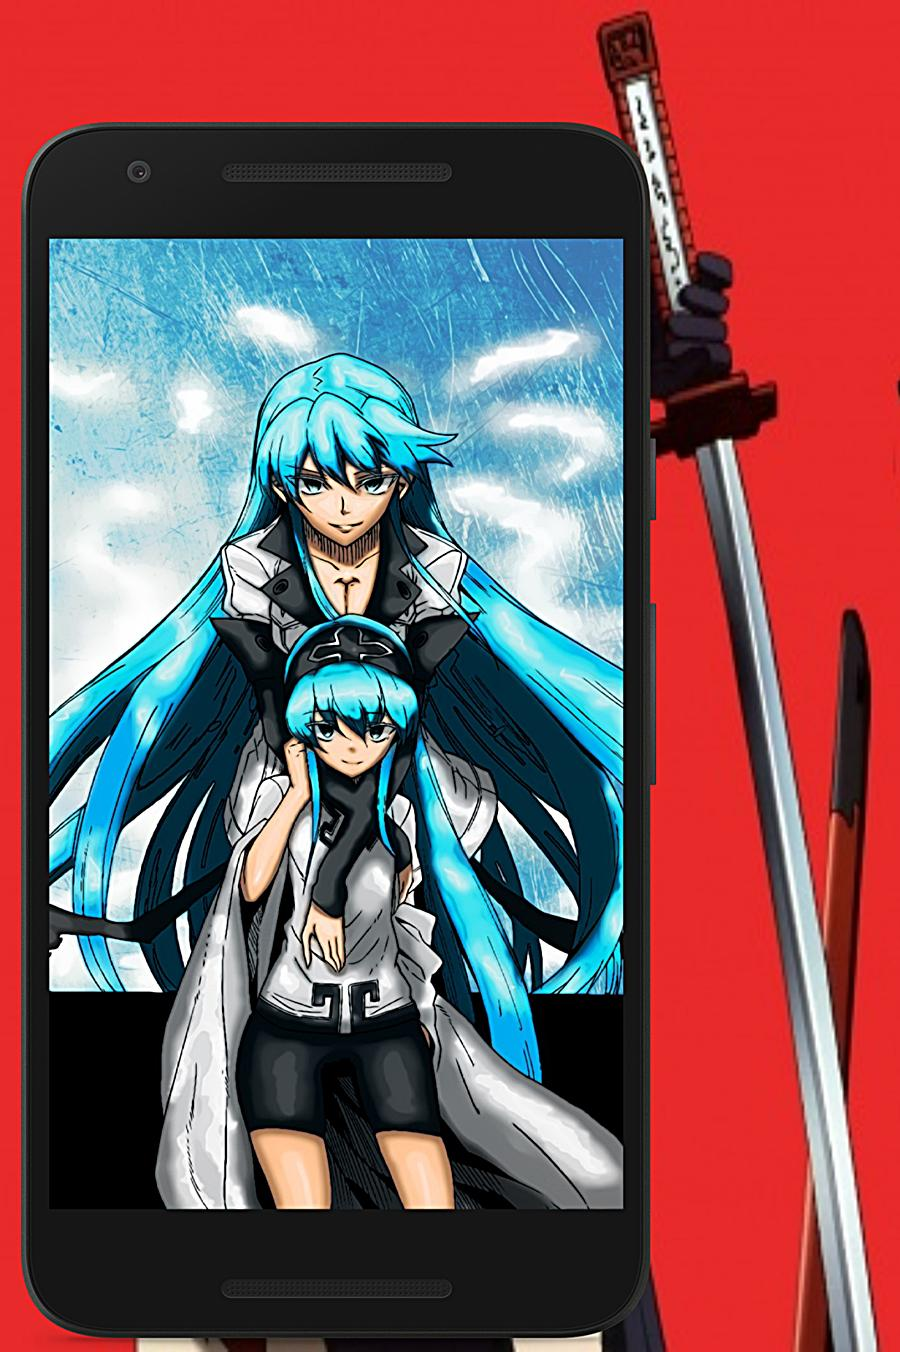 Akame Ga Kill Wallpapers For Android Apk Download